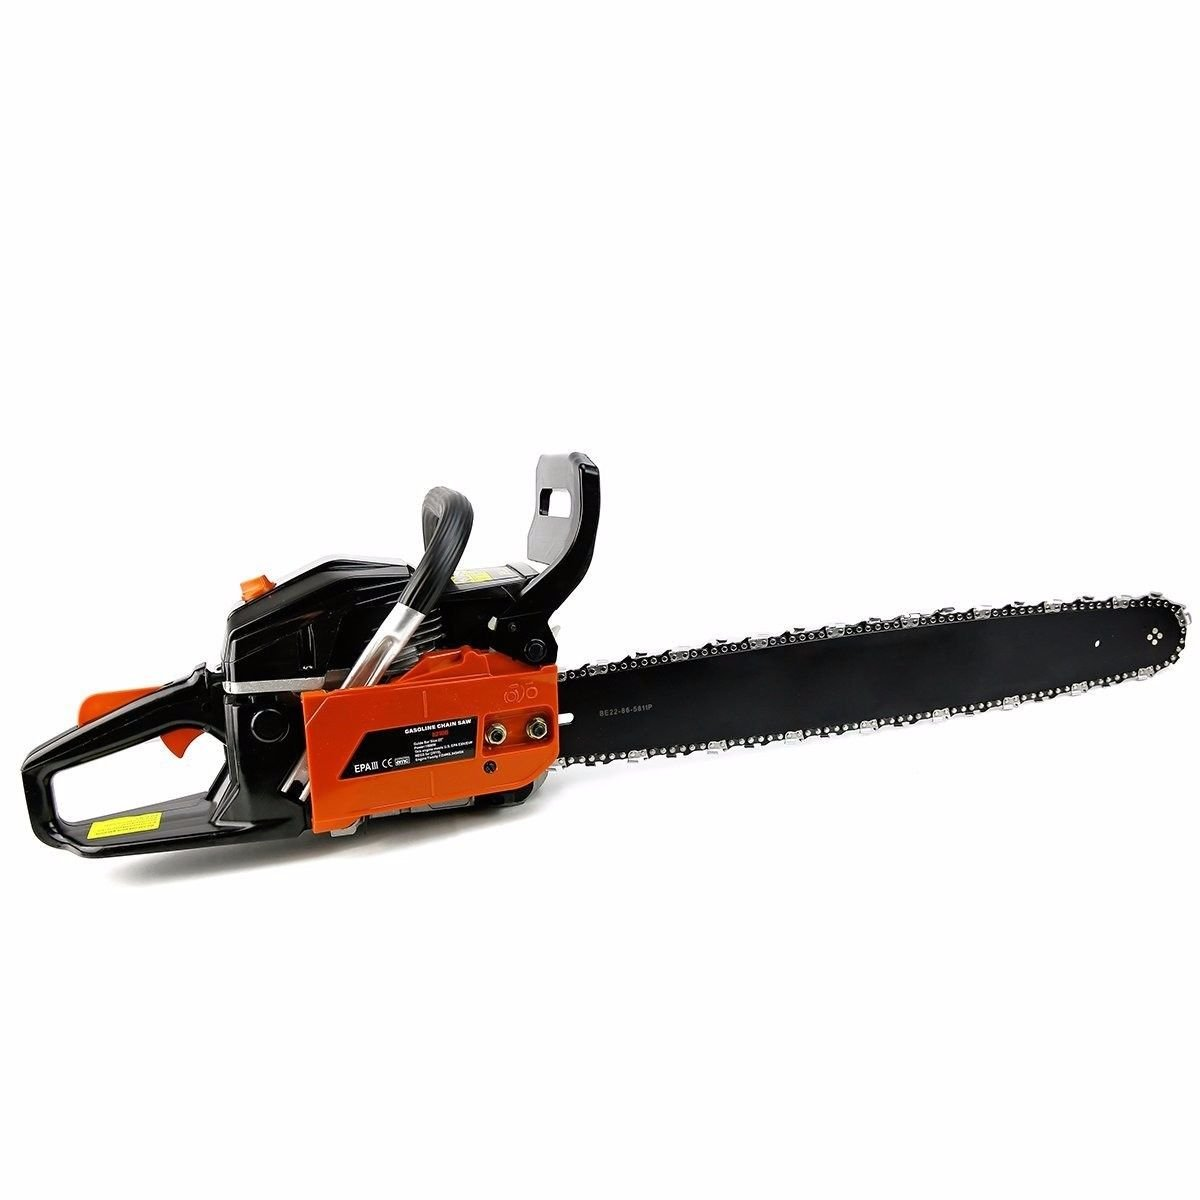 onestops8 chainsaw cutting wood gas chain saw aluminum gasoline 2.4hp engine